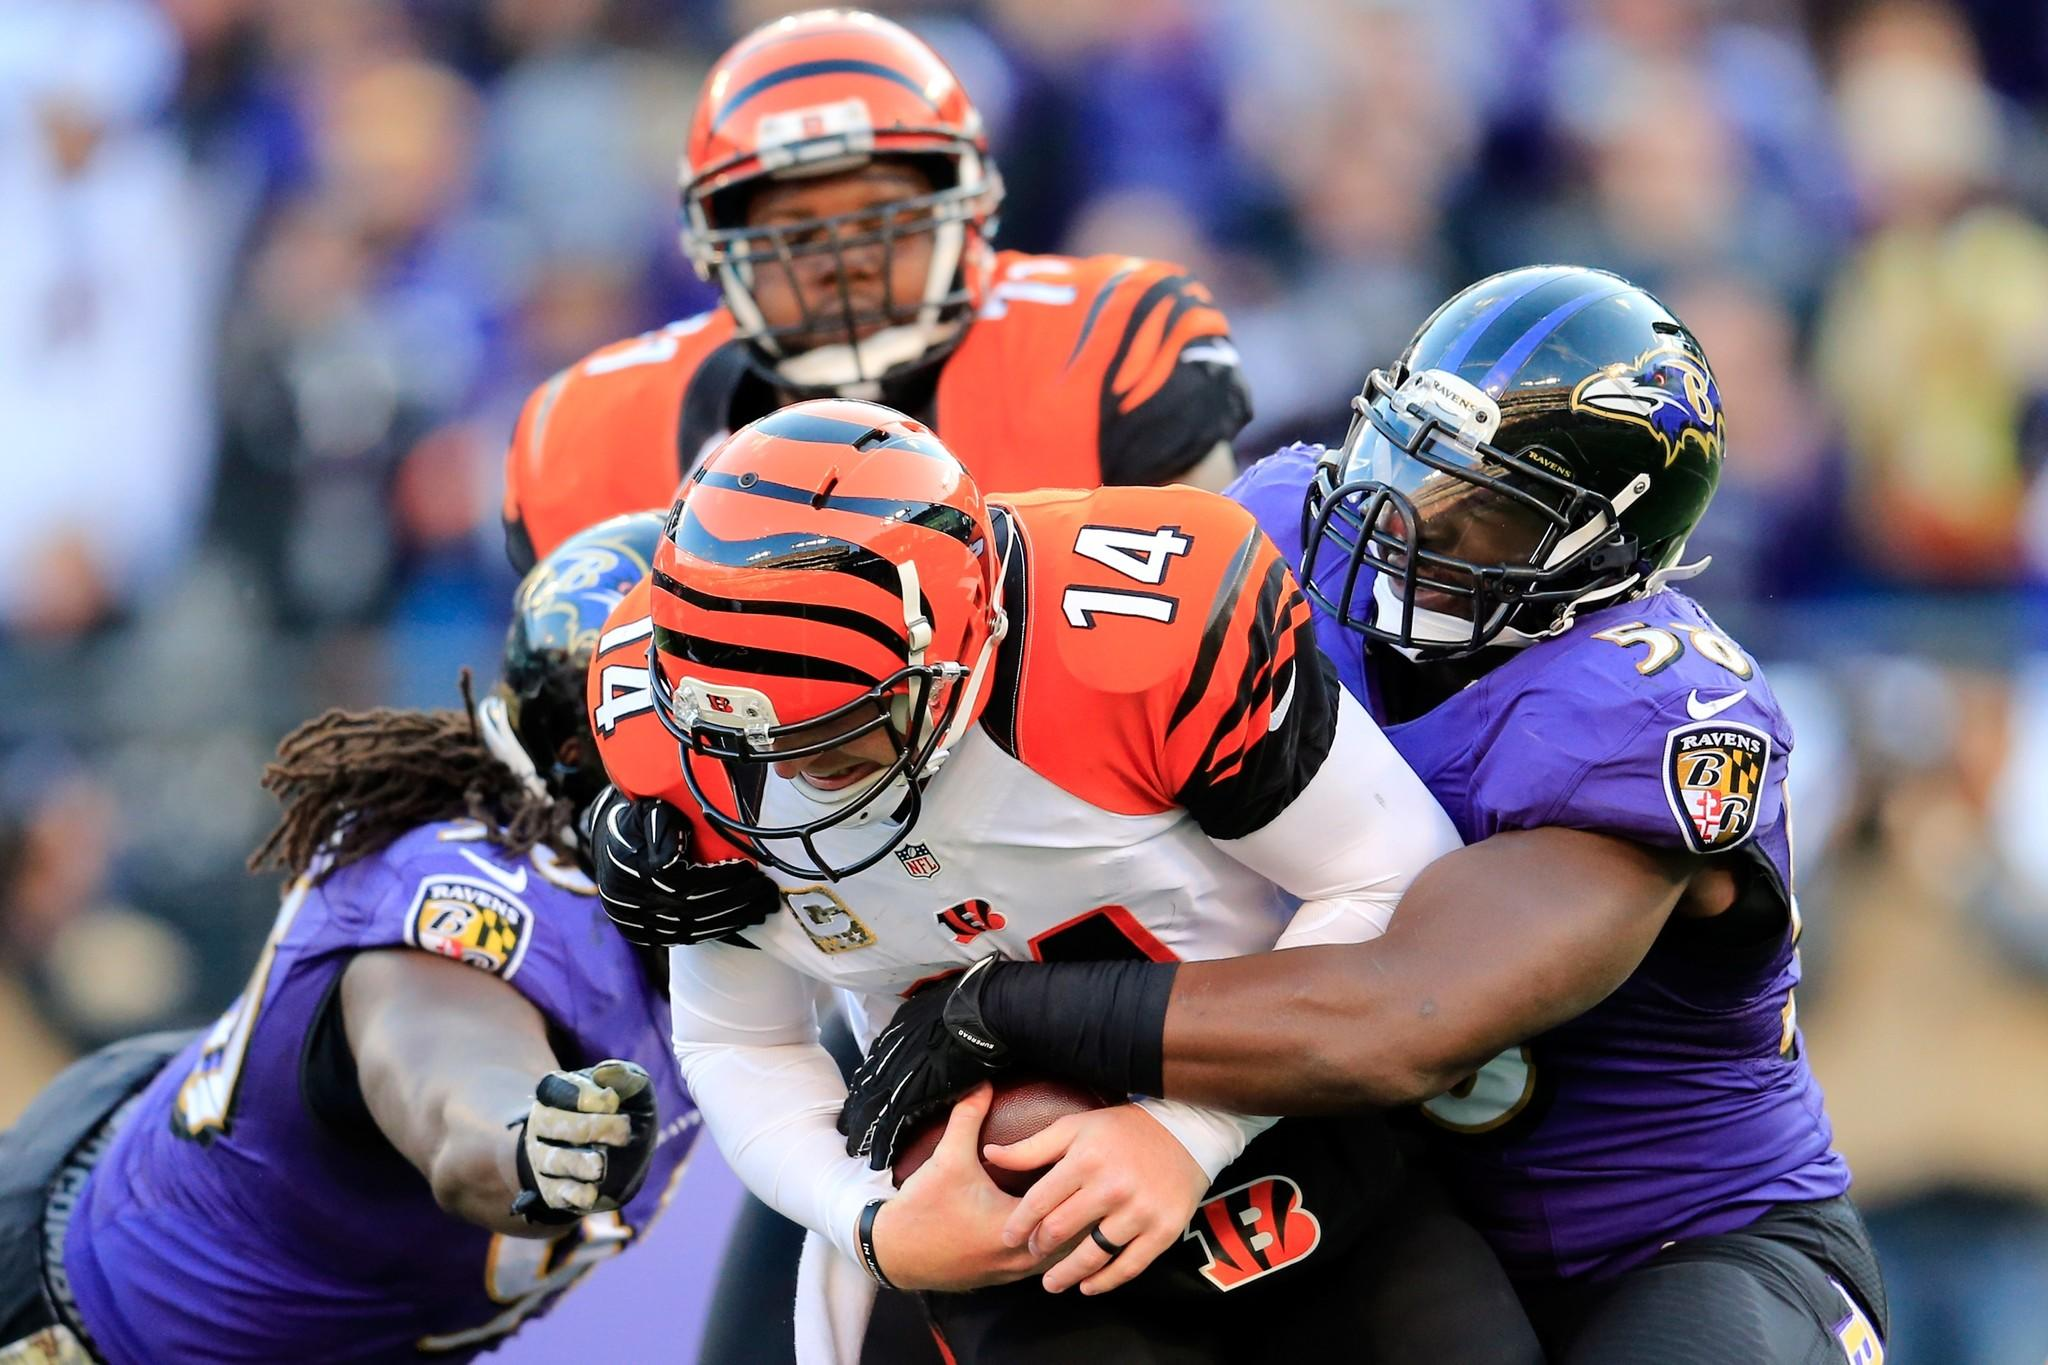 Ravens linebacker Elvis Dumervil sacks Bengals quarterback Andy Dalton in the first meeting between the teams in November.